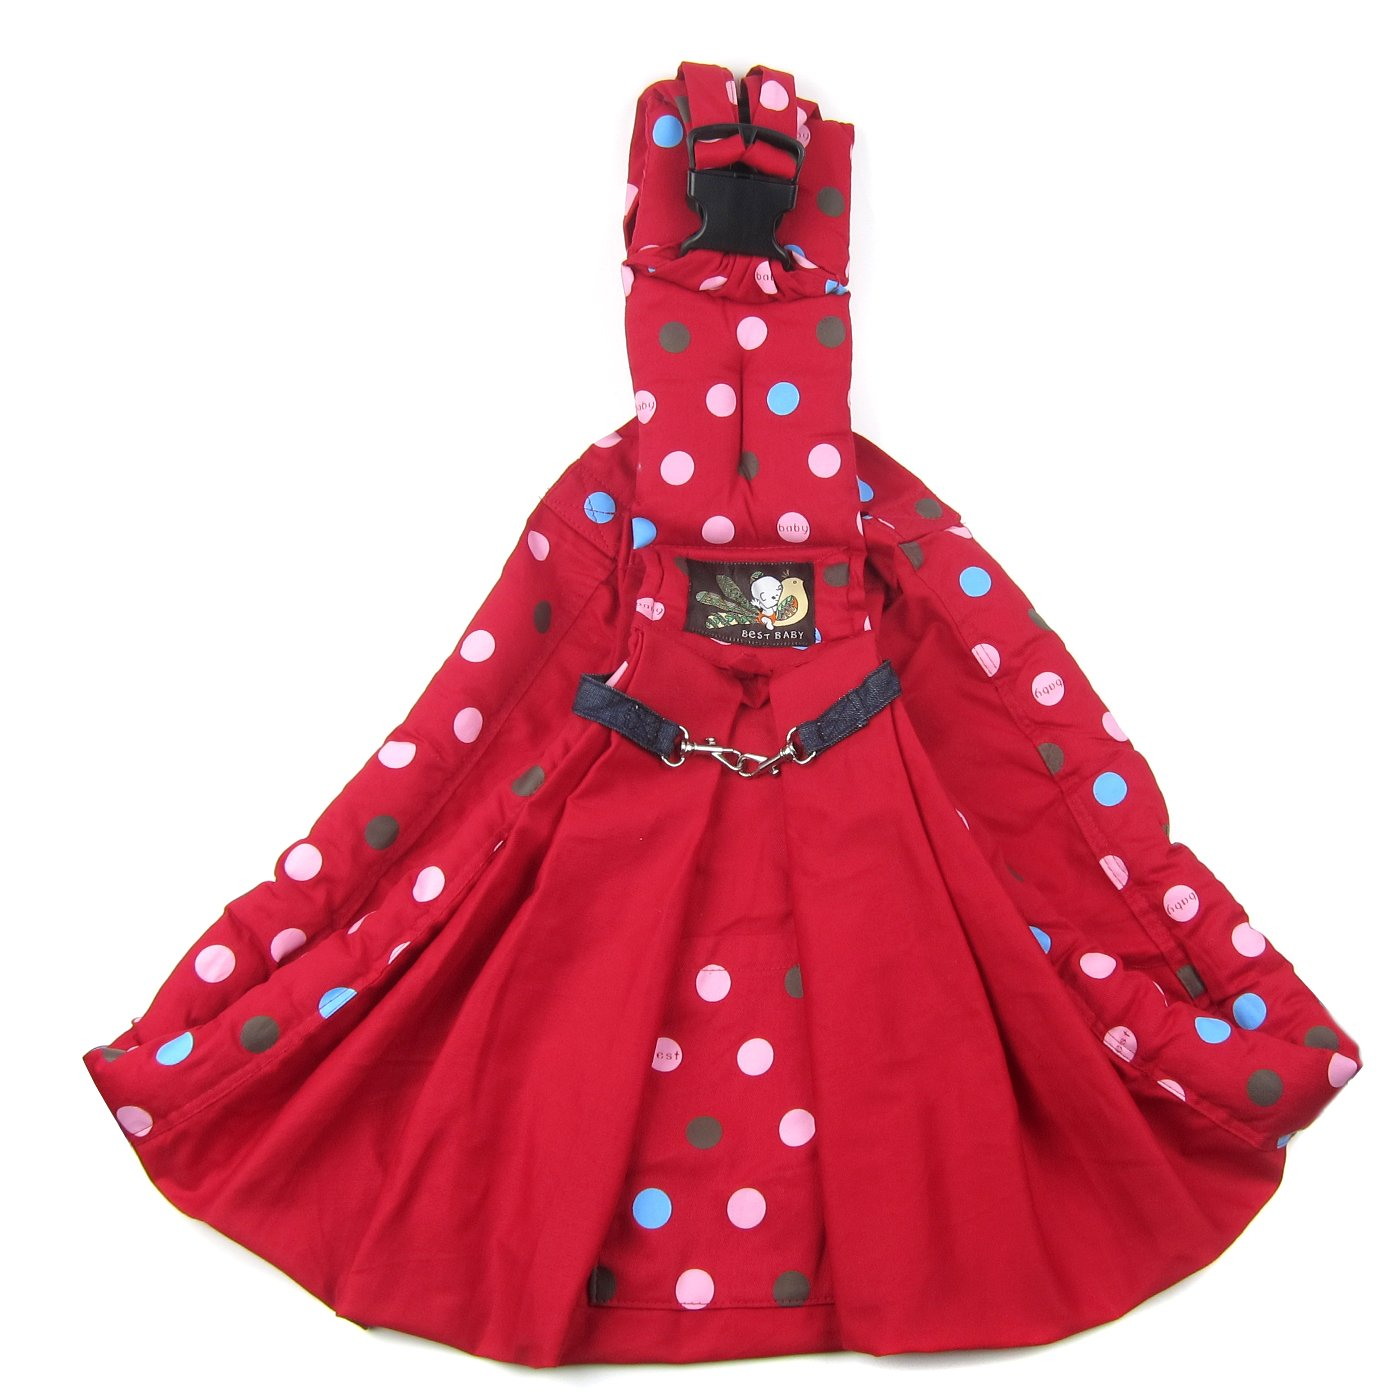 Alfie Pet by Petoga Couture - Hollis Pet Sling Carrier with Adjustable Strap - Color: Red by Alfie (Image #3)